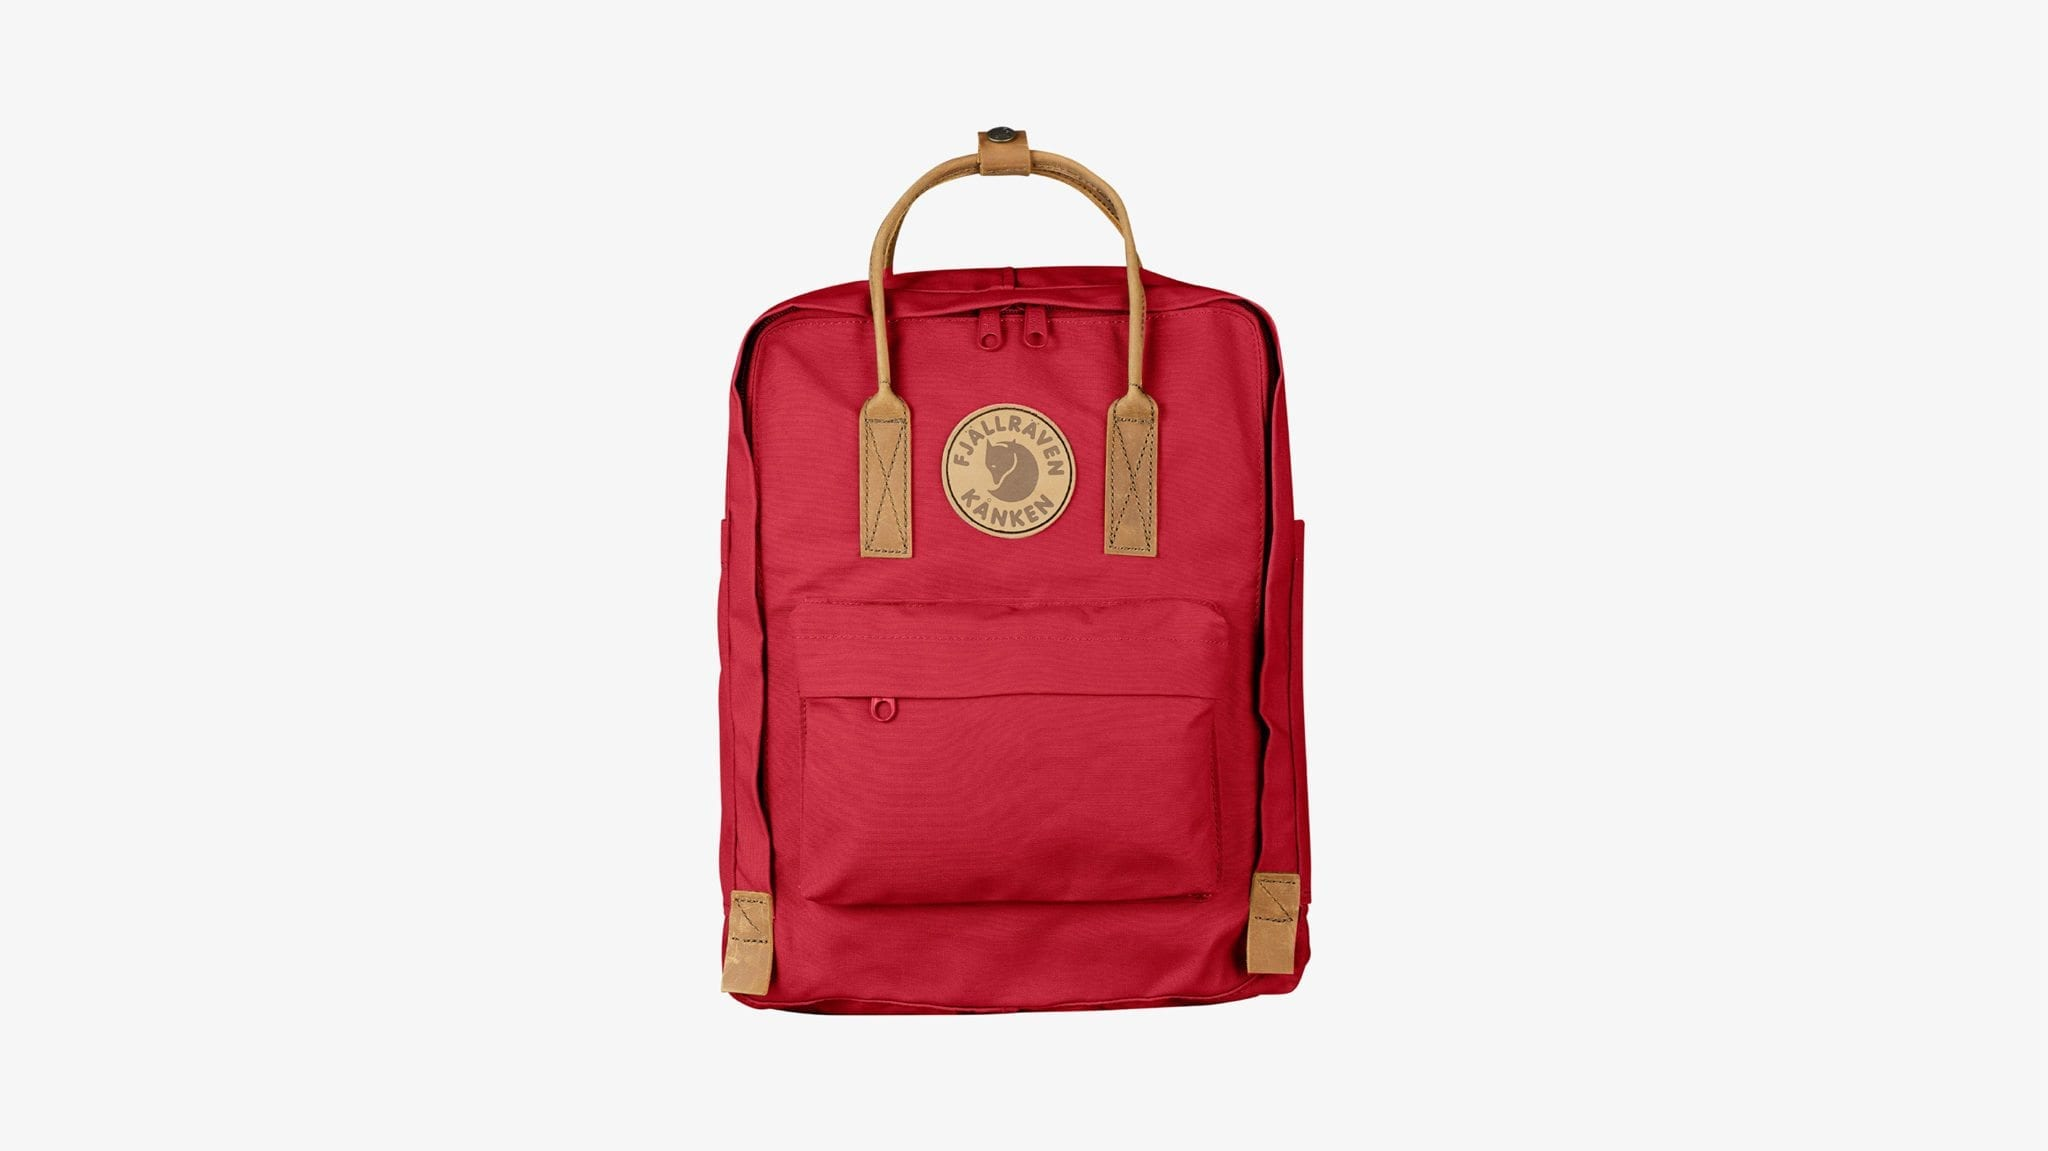 Fjallraven Kanken Backpack b41854d2839e0